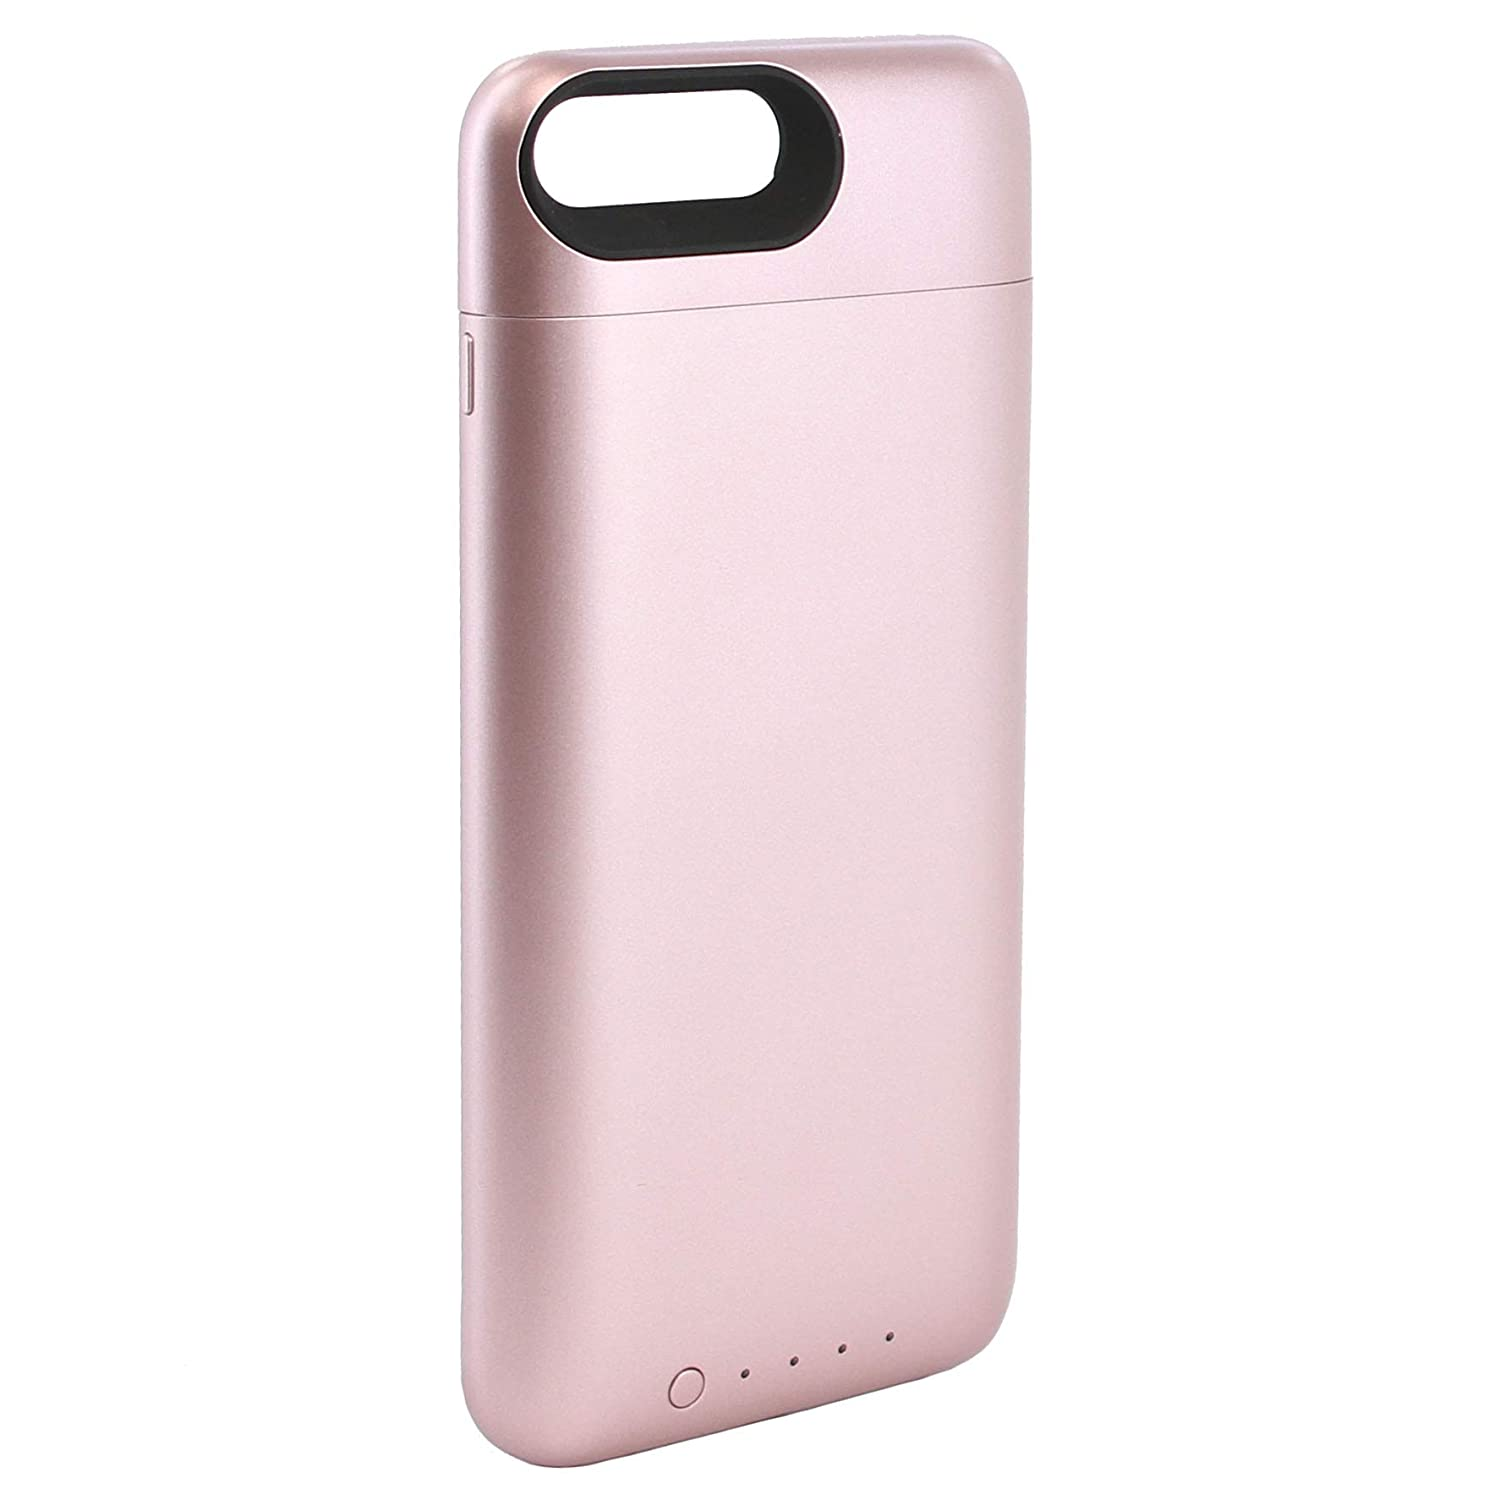 super popular 0df9a 3ee93 Mophie juice pack air iPhone 7 Plus Battery Case Rose Gold - 2420 mAh -  Renewed